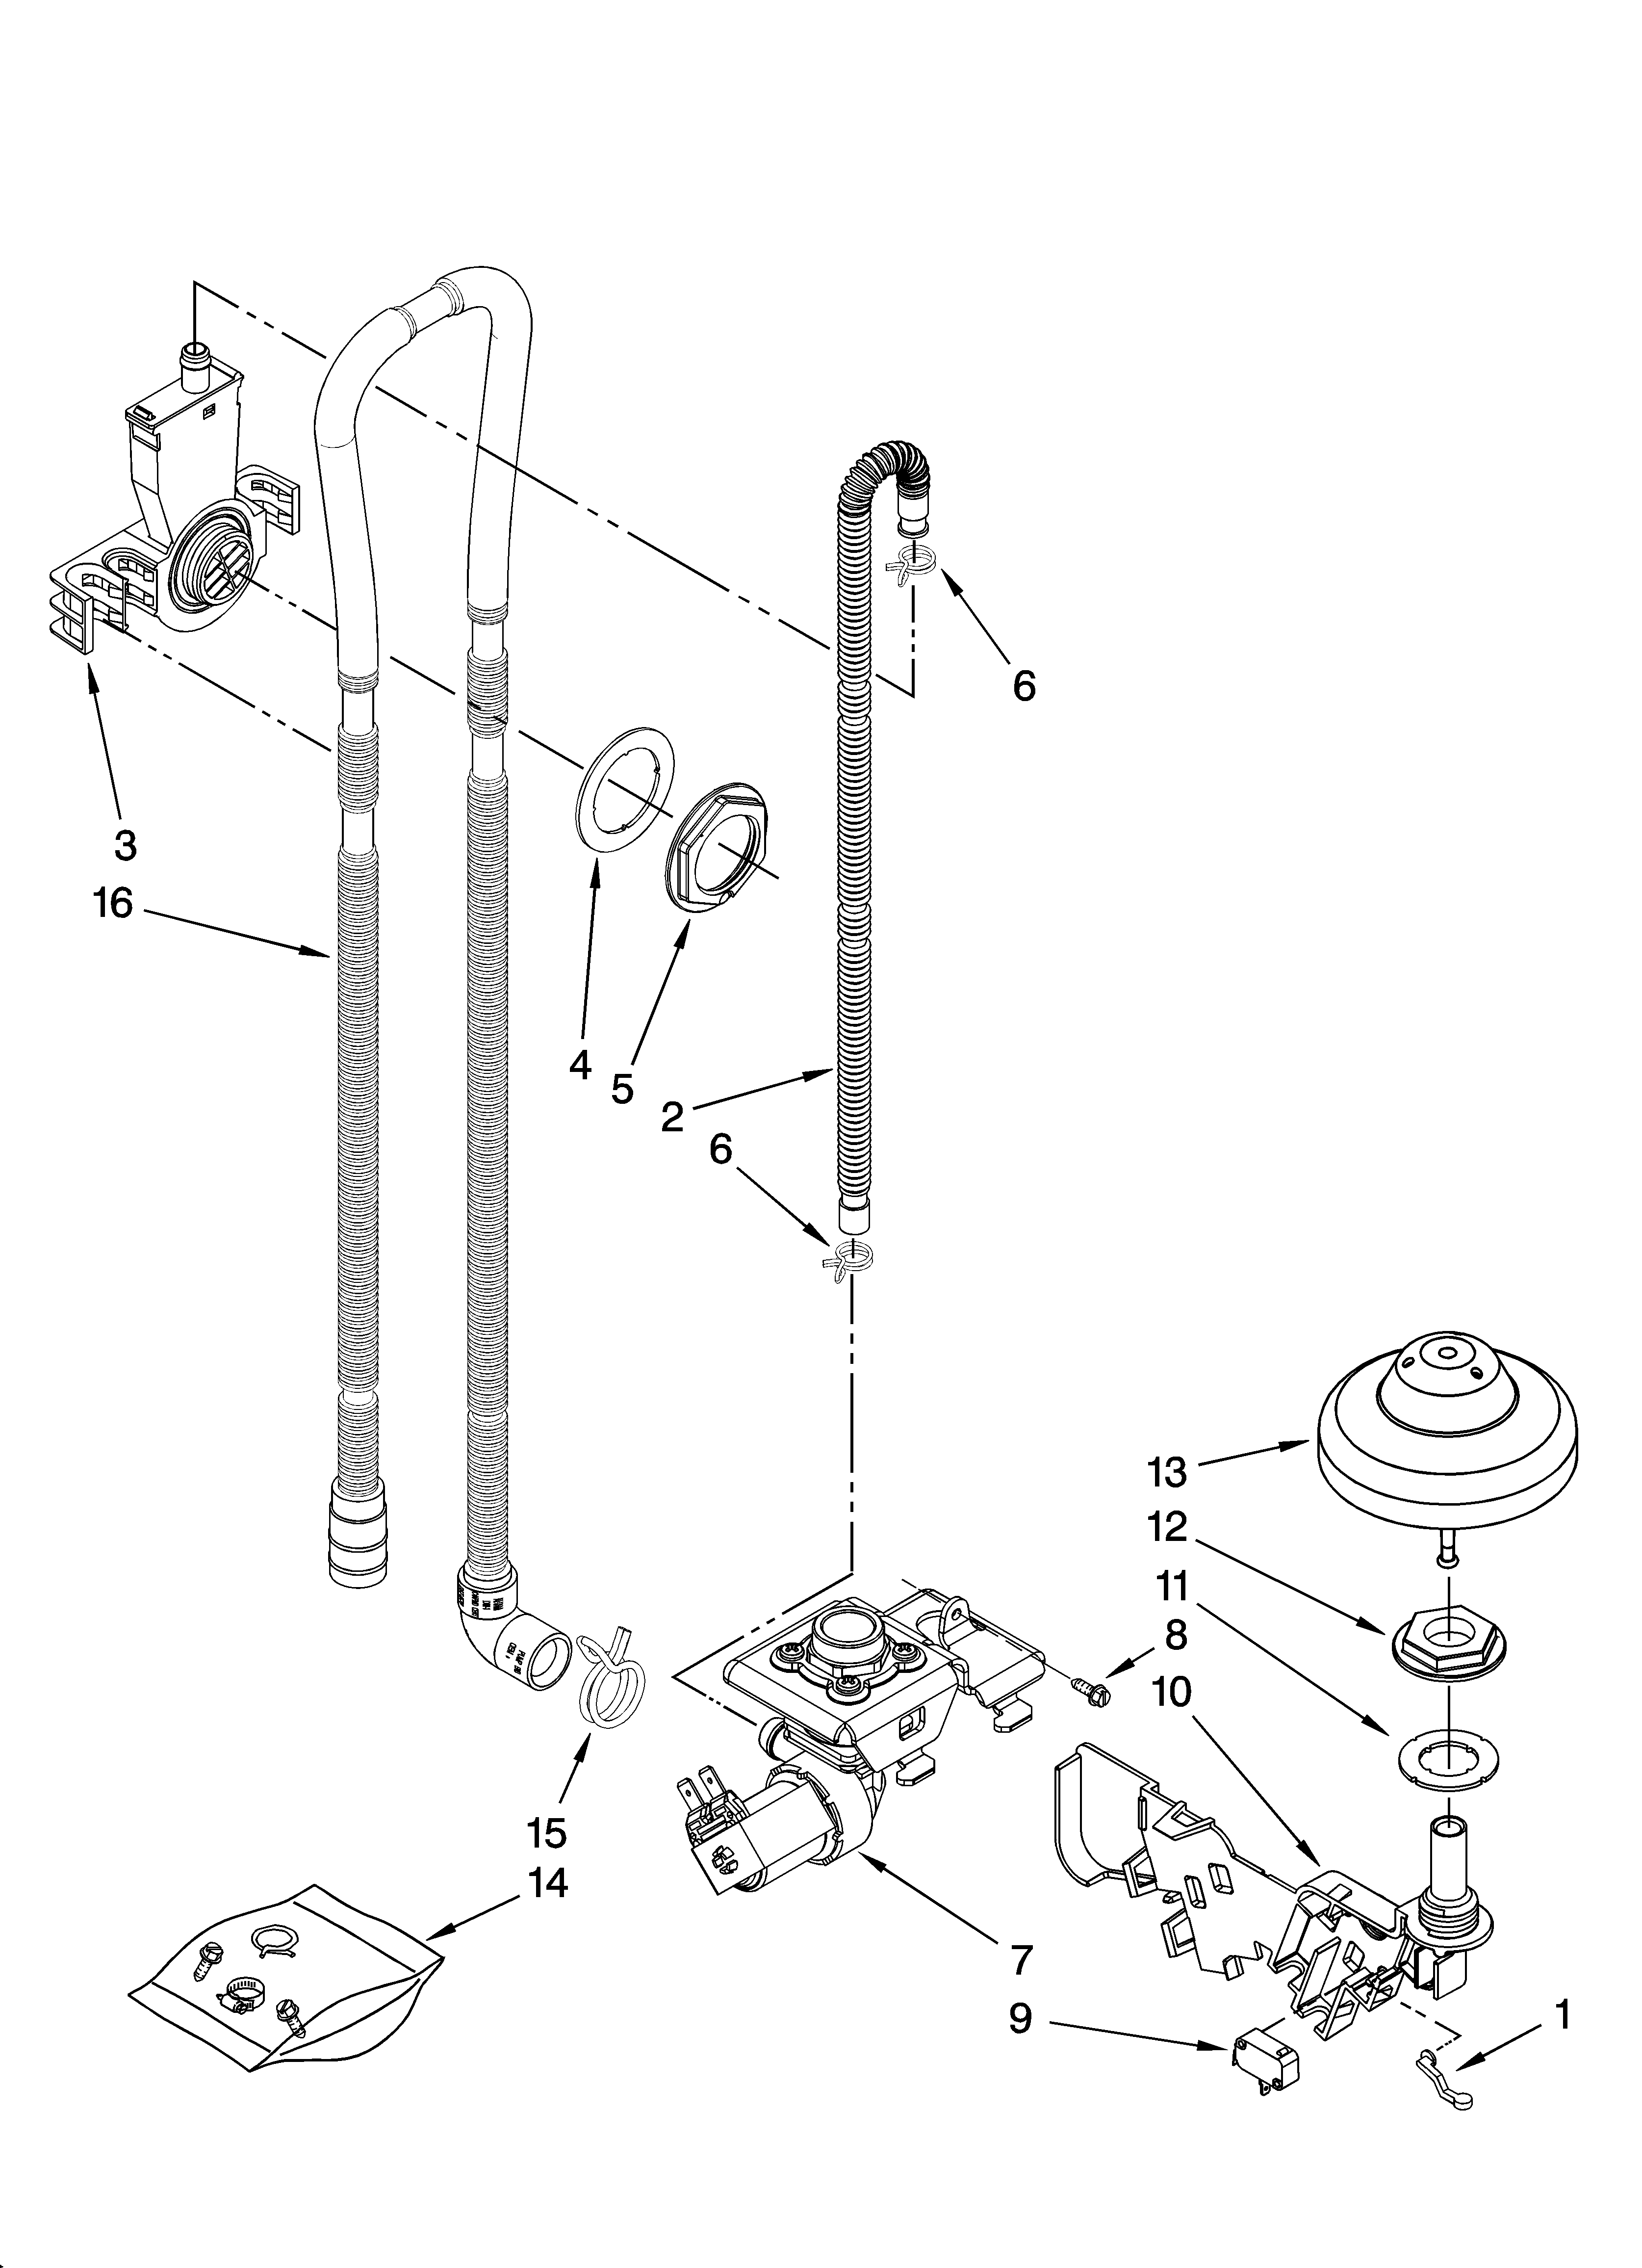 Shop For Kitchenaid Dishwasher Repair Parts For Model Kudk03ctwh2 At Sears Partsdirect Find Kitchenaid Dishwasher Repair Kitchenaid Dishwasher Diagram Design